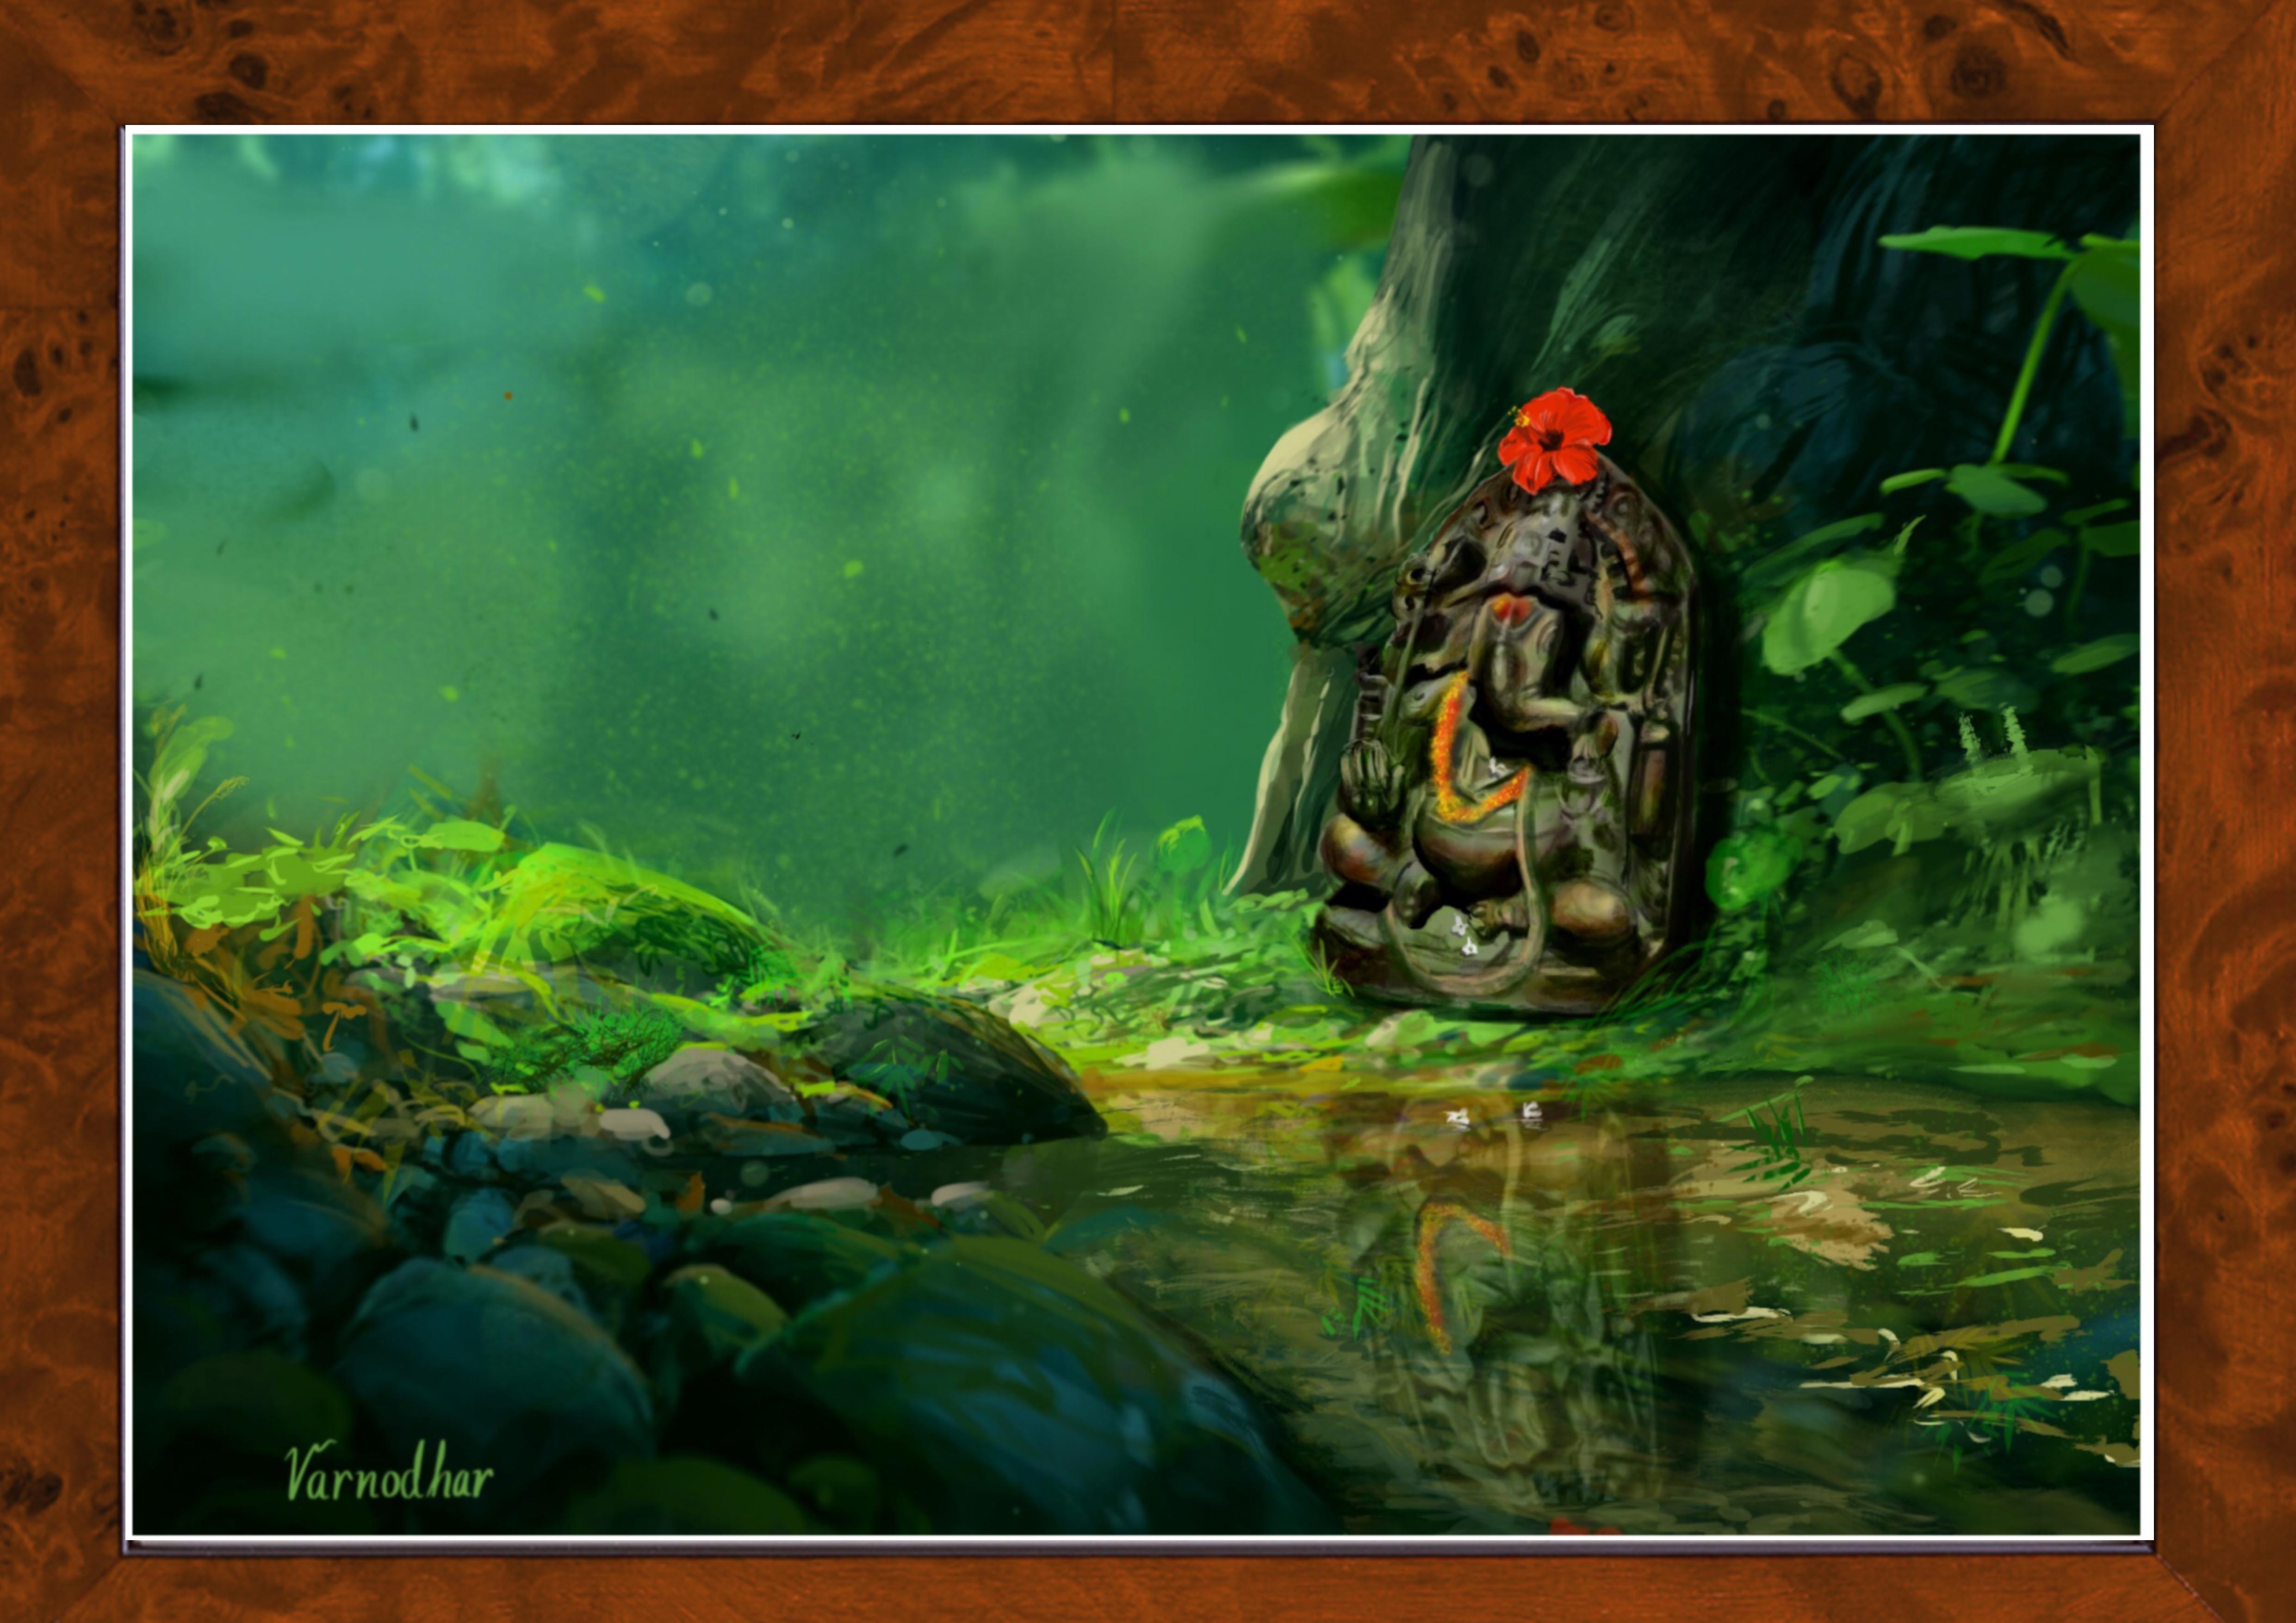 Lord Ganesha Digital Painting On Canvas Digital Art